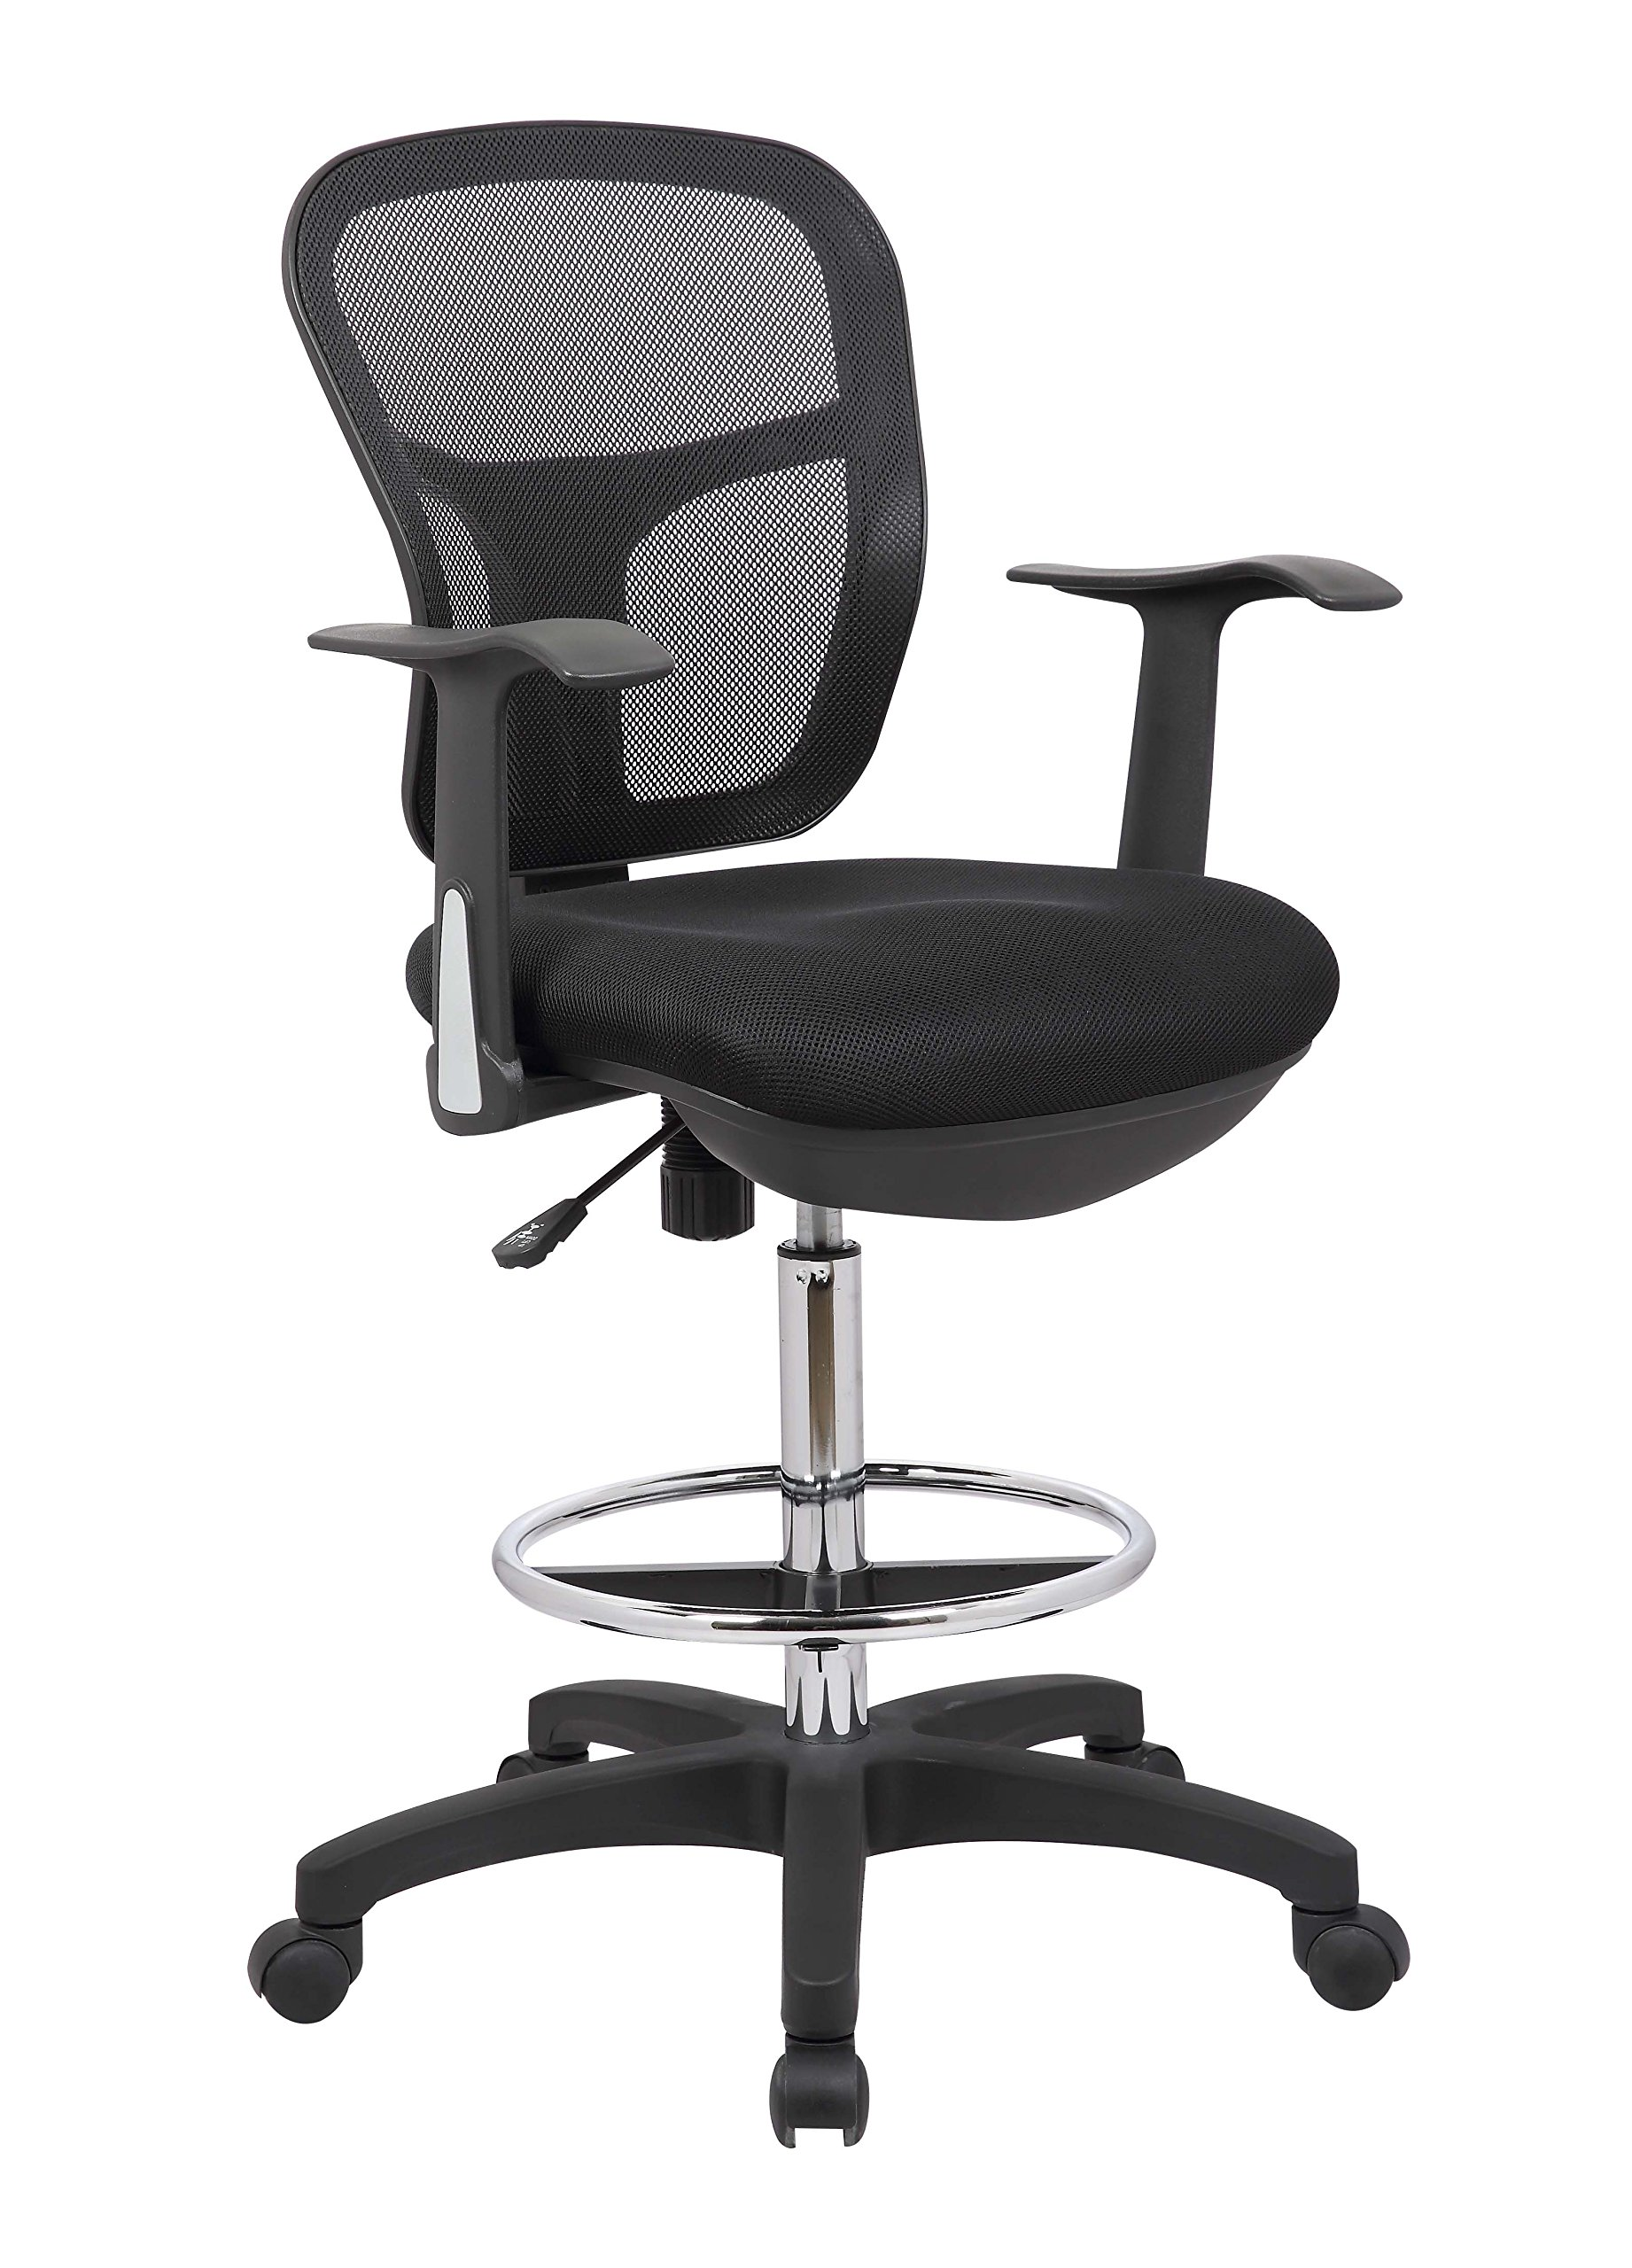 Office Factor Drafting Chair with Foot Ring, Mesh Back Drafting Clerk Stool, Adjustable Height, Removable Arms Swivel Chair for Office and Home by OFFICE FACTOR